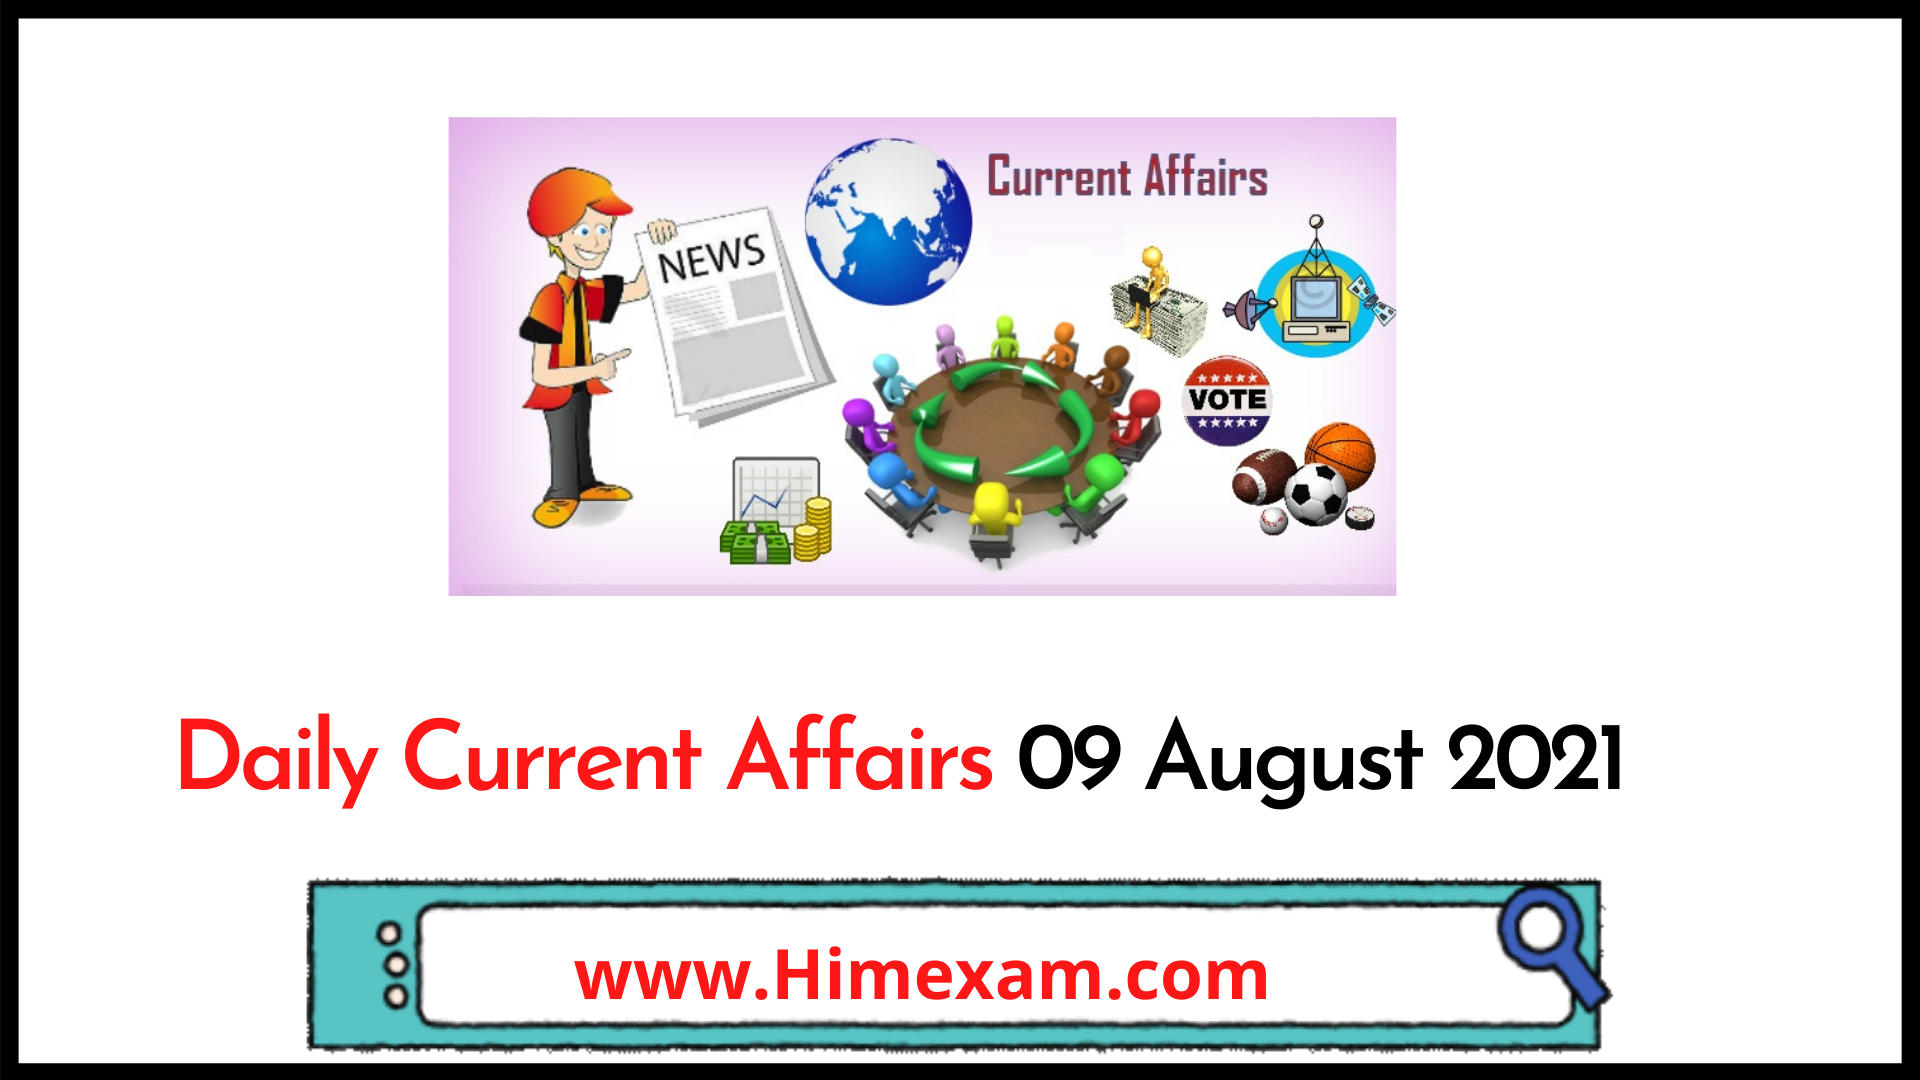 Daily Current Affairs 09 August 2021